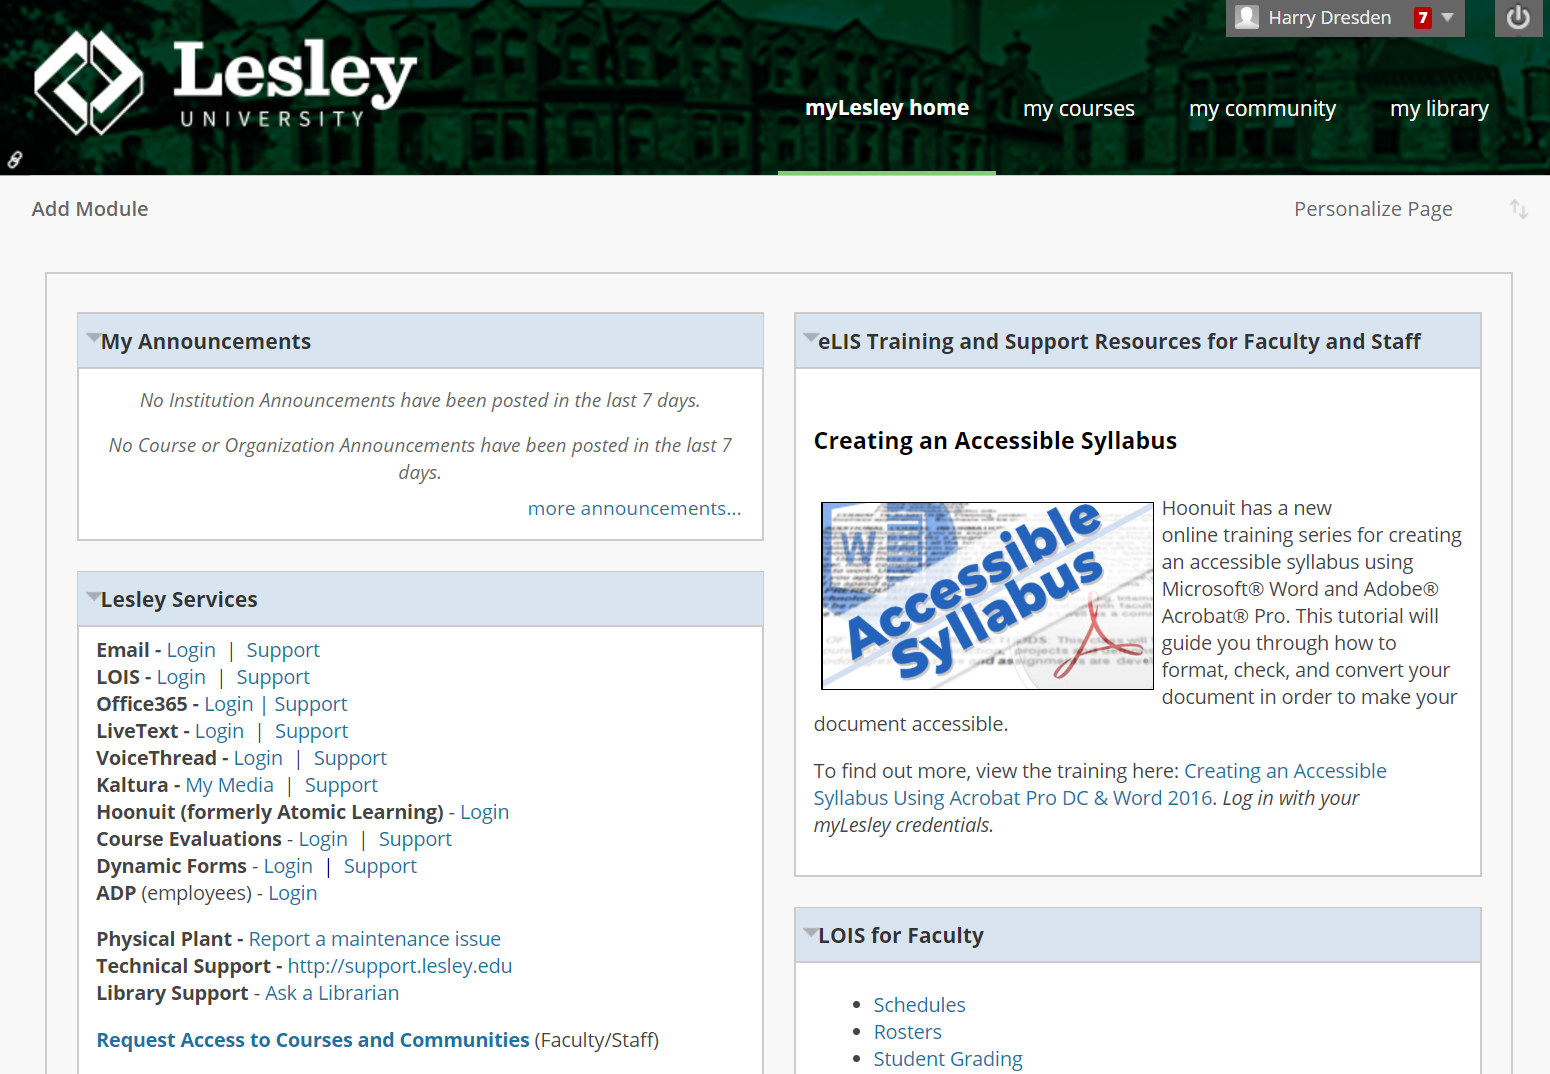 screenshot of myLesley home page for faculty/staff